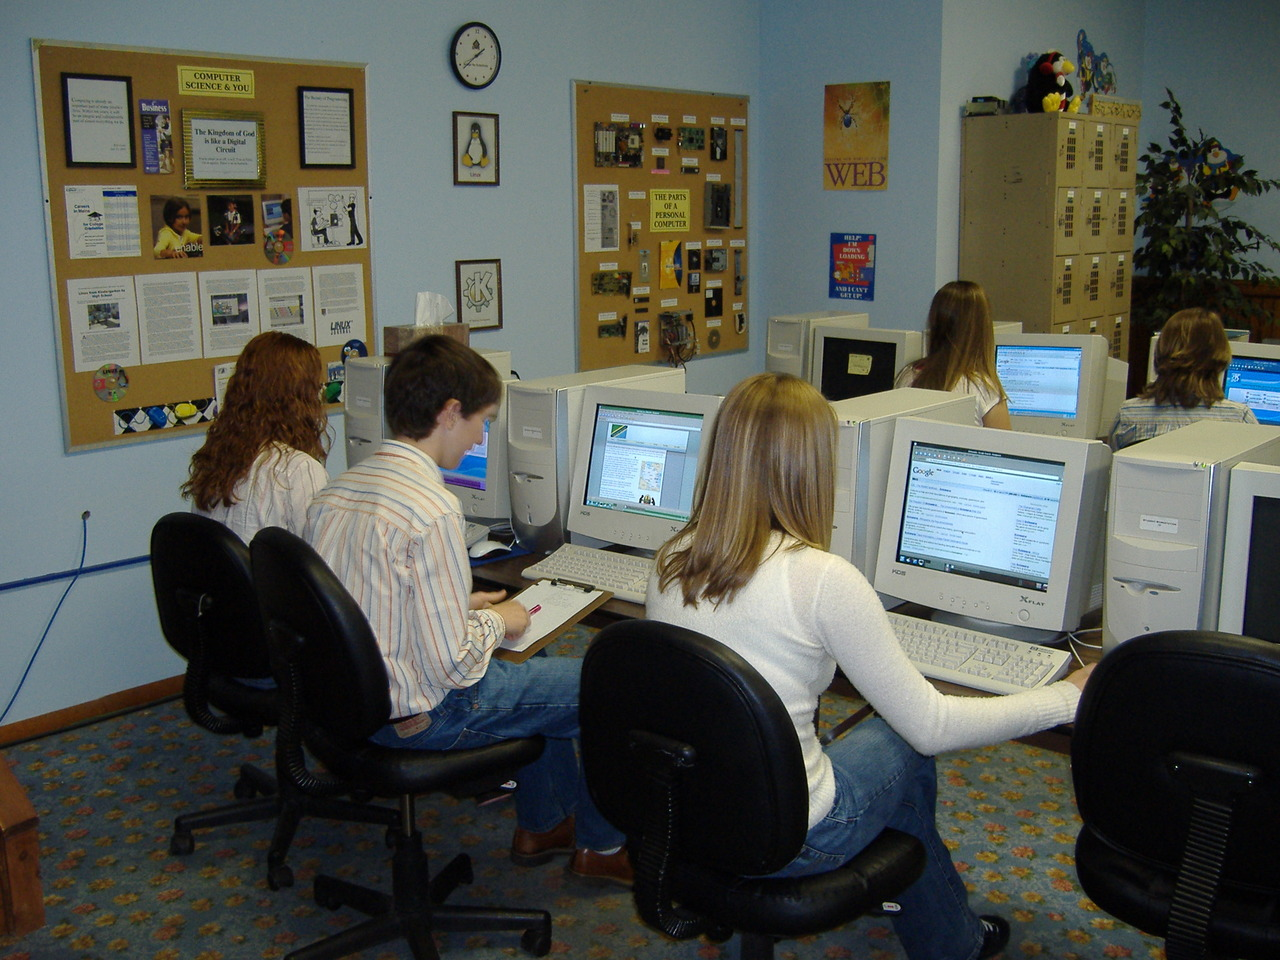 Worksheet Educational Computer Programs educational computer games studying with education we need from a students working on class assignment in lab software